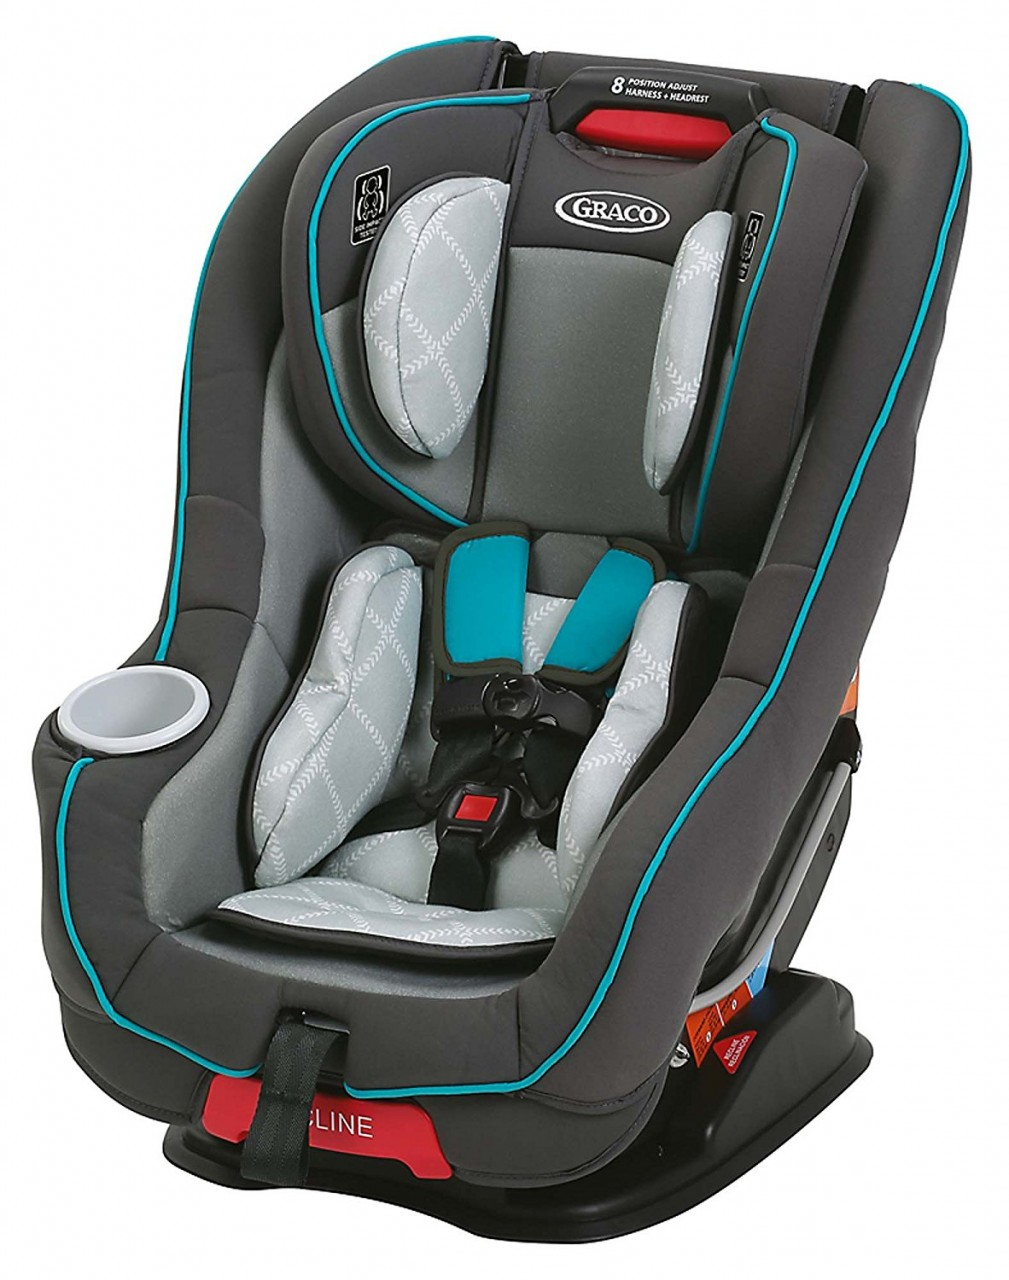 The Graco MySize 65, Graco Size4Me 65 U0026 Graco Fit4Me 65 Are Convertibles  Seats That All Share The Same Platform. For This Reason They Are Often  Referred To ...